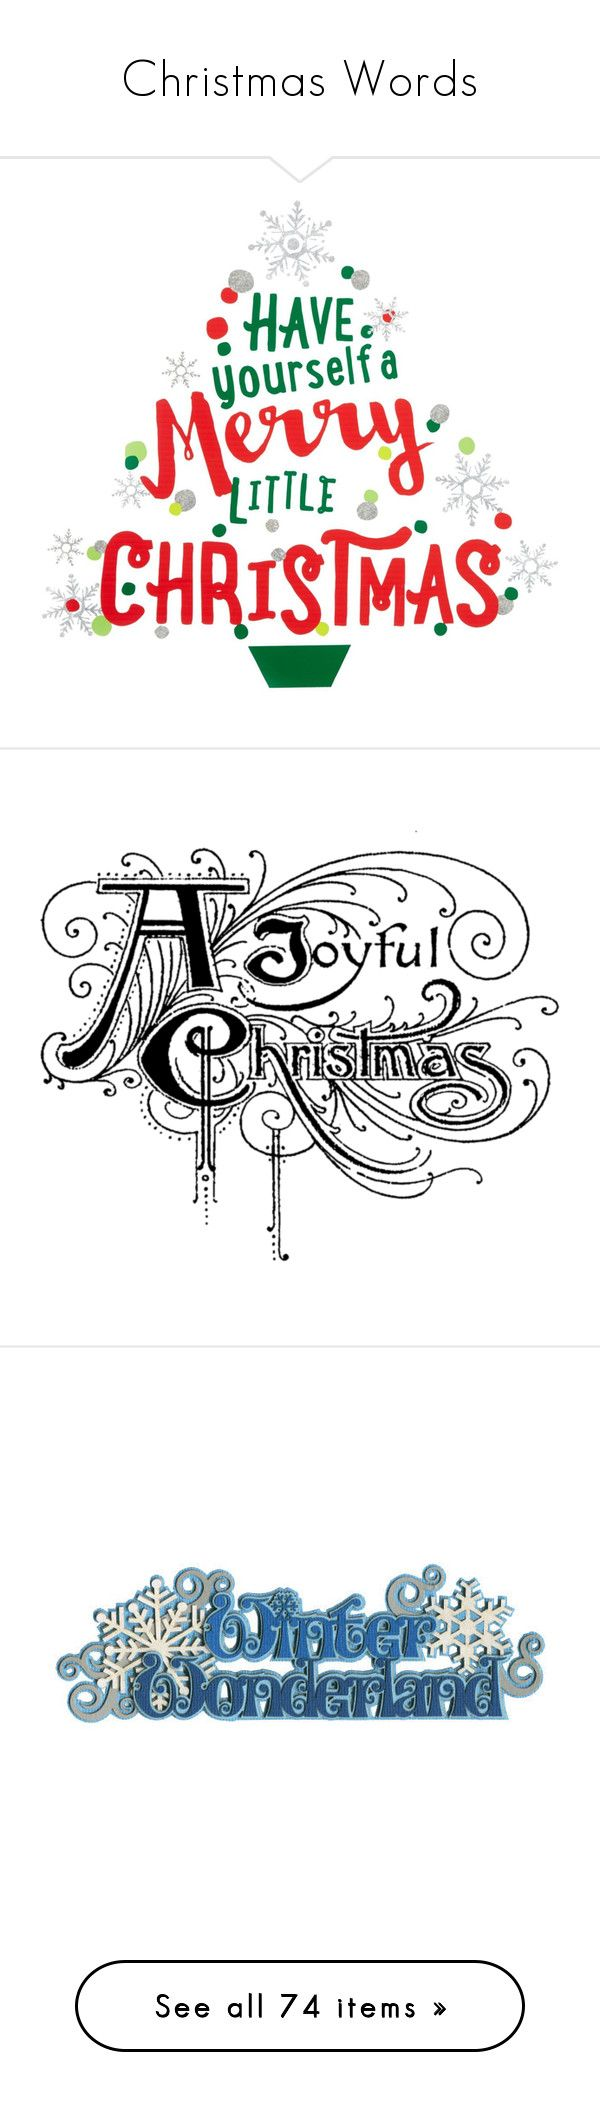 christmas words by judymjohnson liked on polyvore featuring home home decor